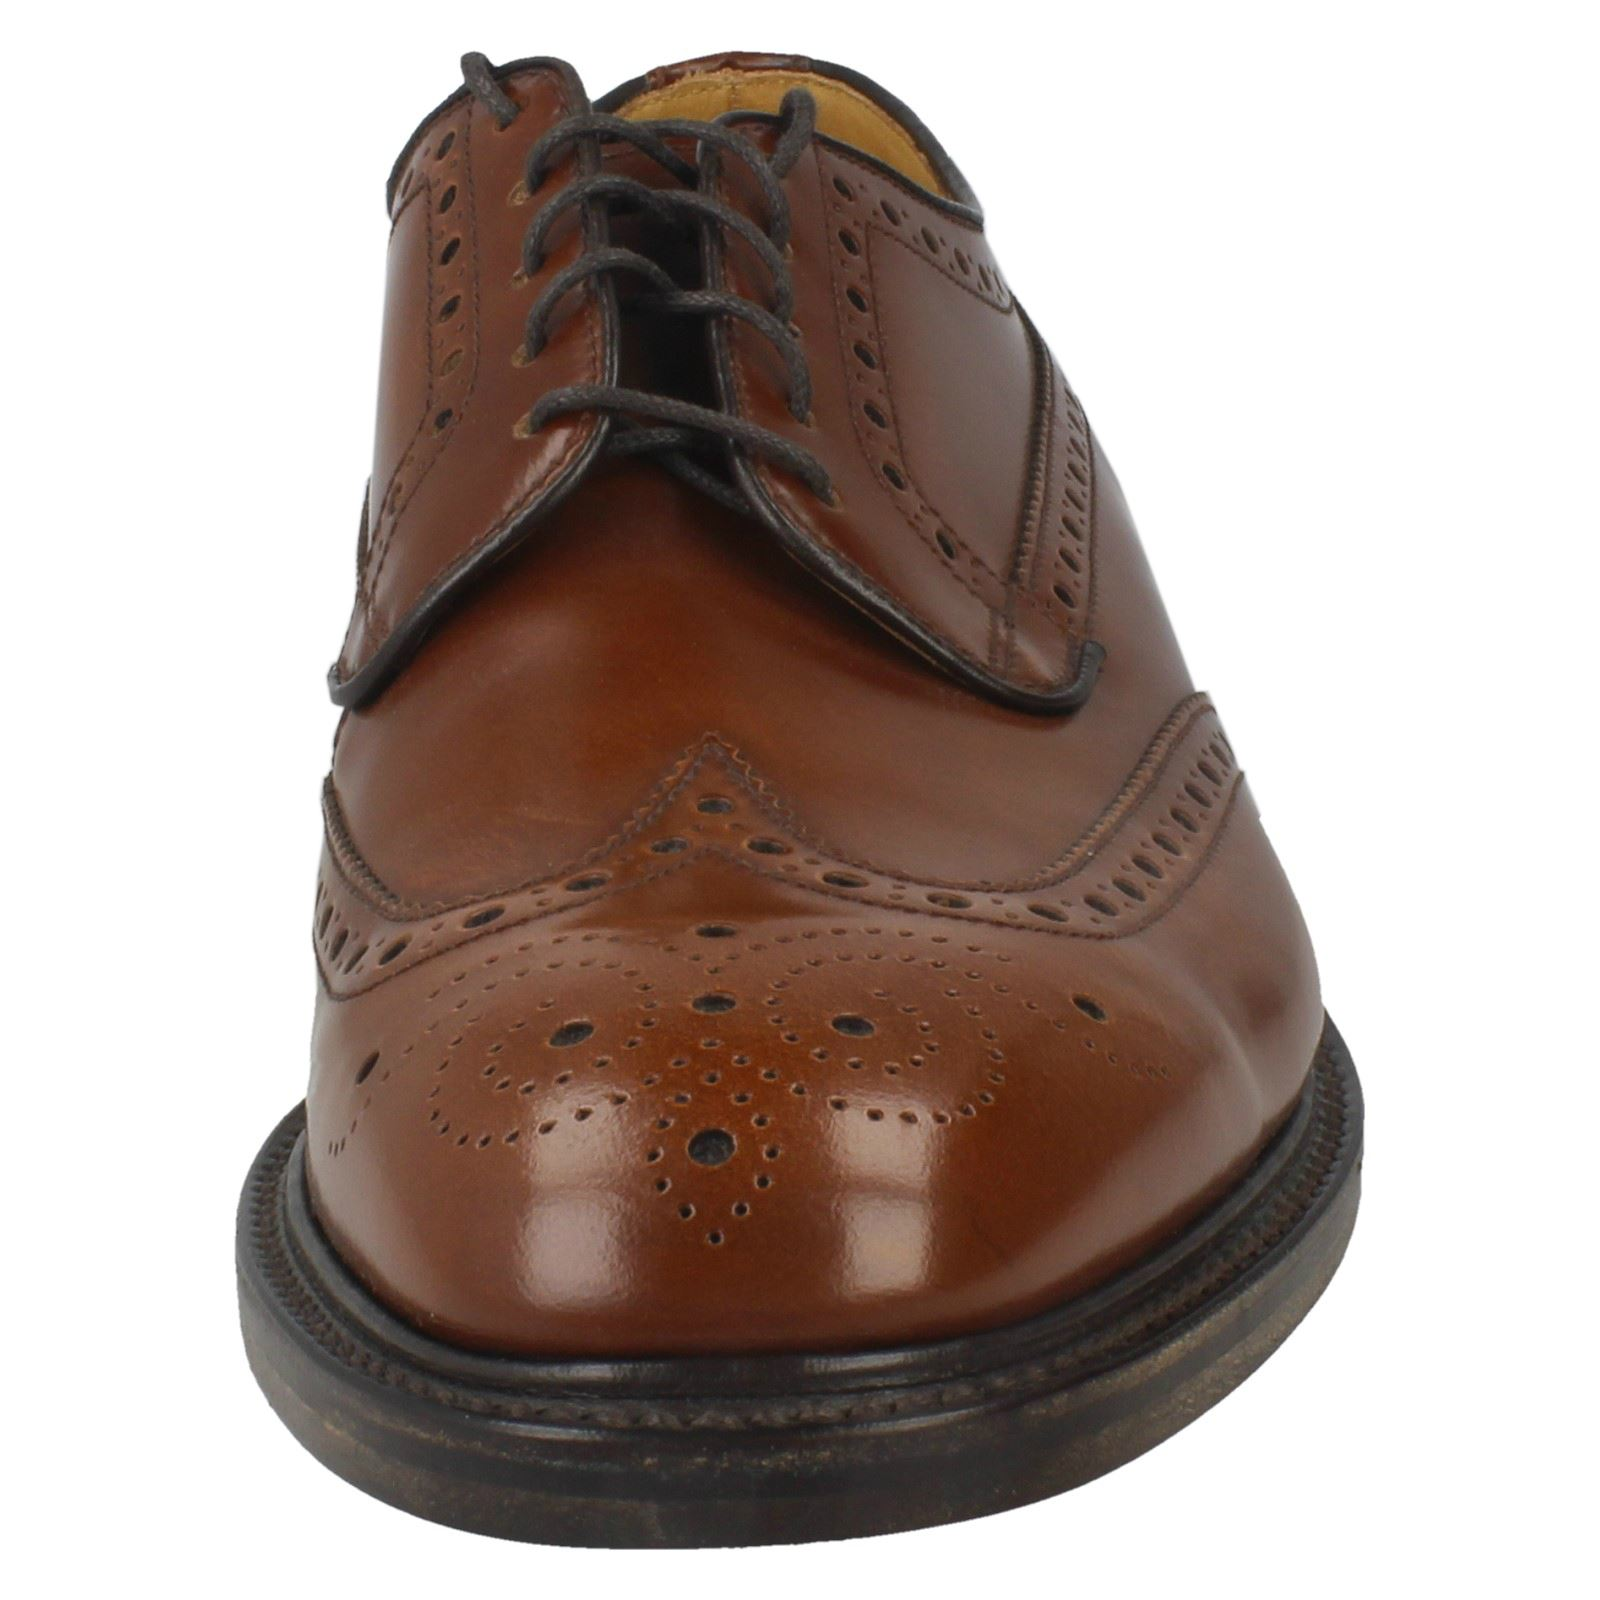 Mens Loake Smart/Formal Brogue Brogue Smart/Formal Shoes *Braemar* 063d9b